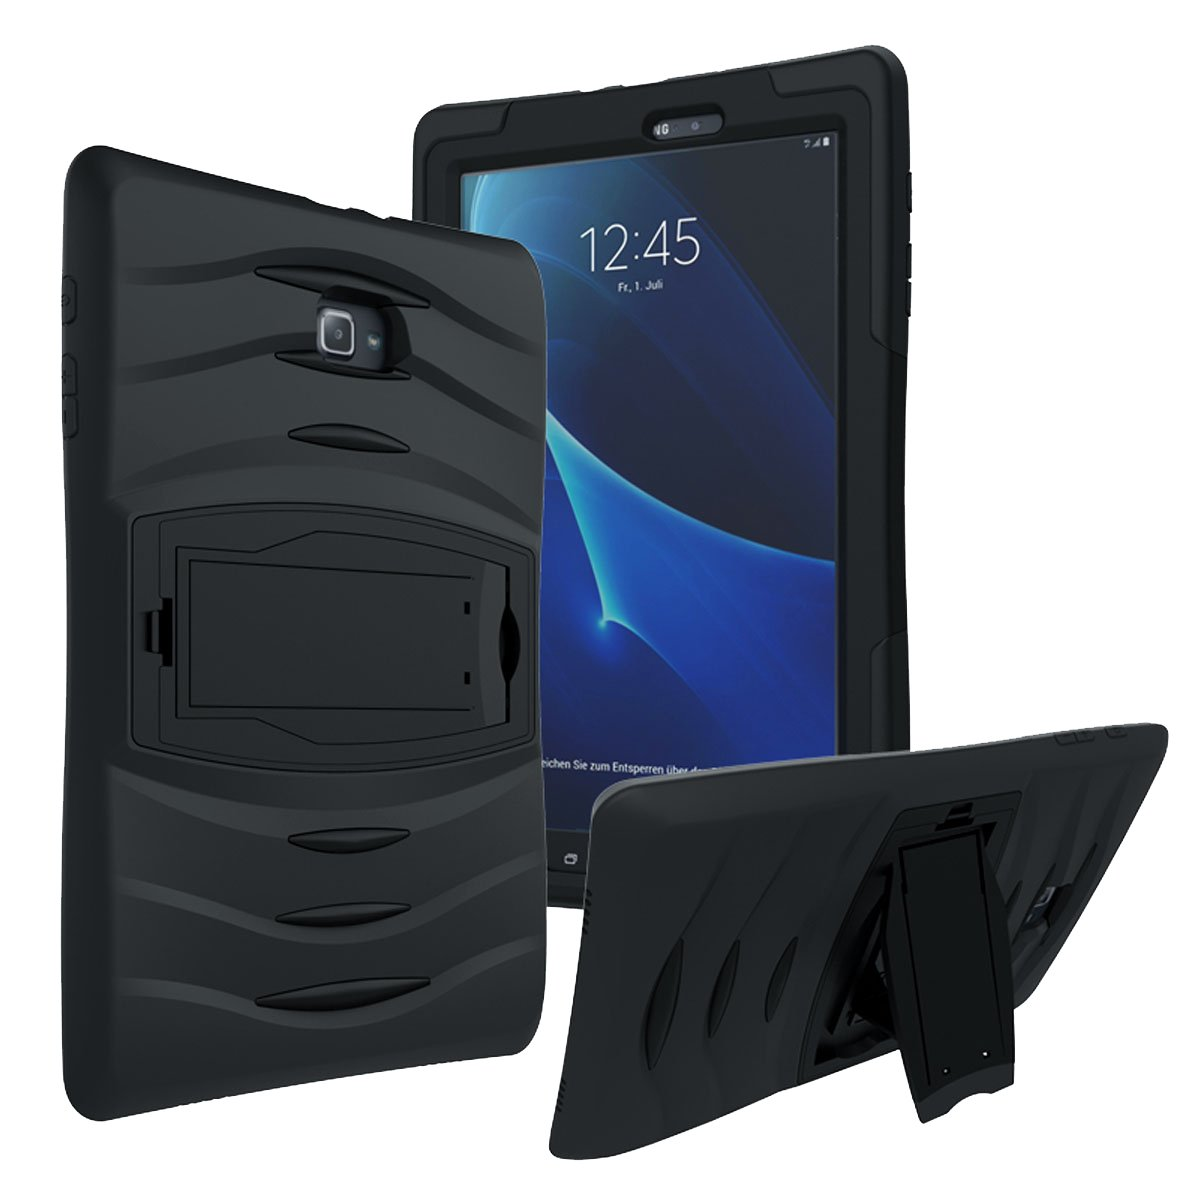 Galaxy Tab A 8.0 Case by kiq Full-body Shock Proof Hybrid Heavy Duty Armor Protective Case for Samsung Galaxy Tab A 8.0 [SM-T350 & SM-T357T] with Kickstand and Screen Protector (Armor Black)